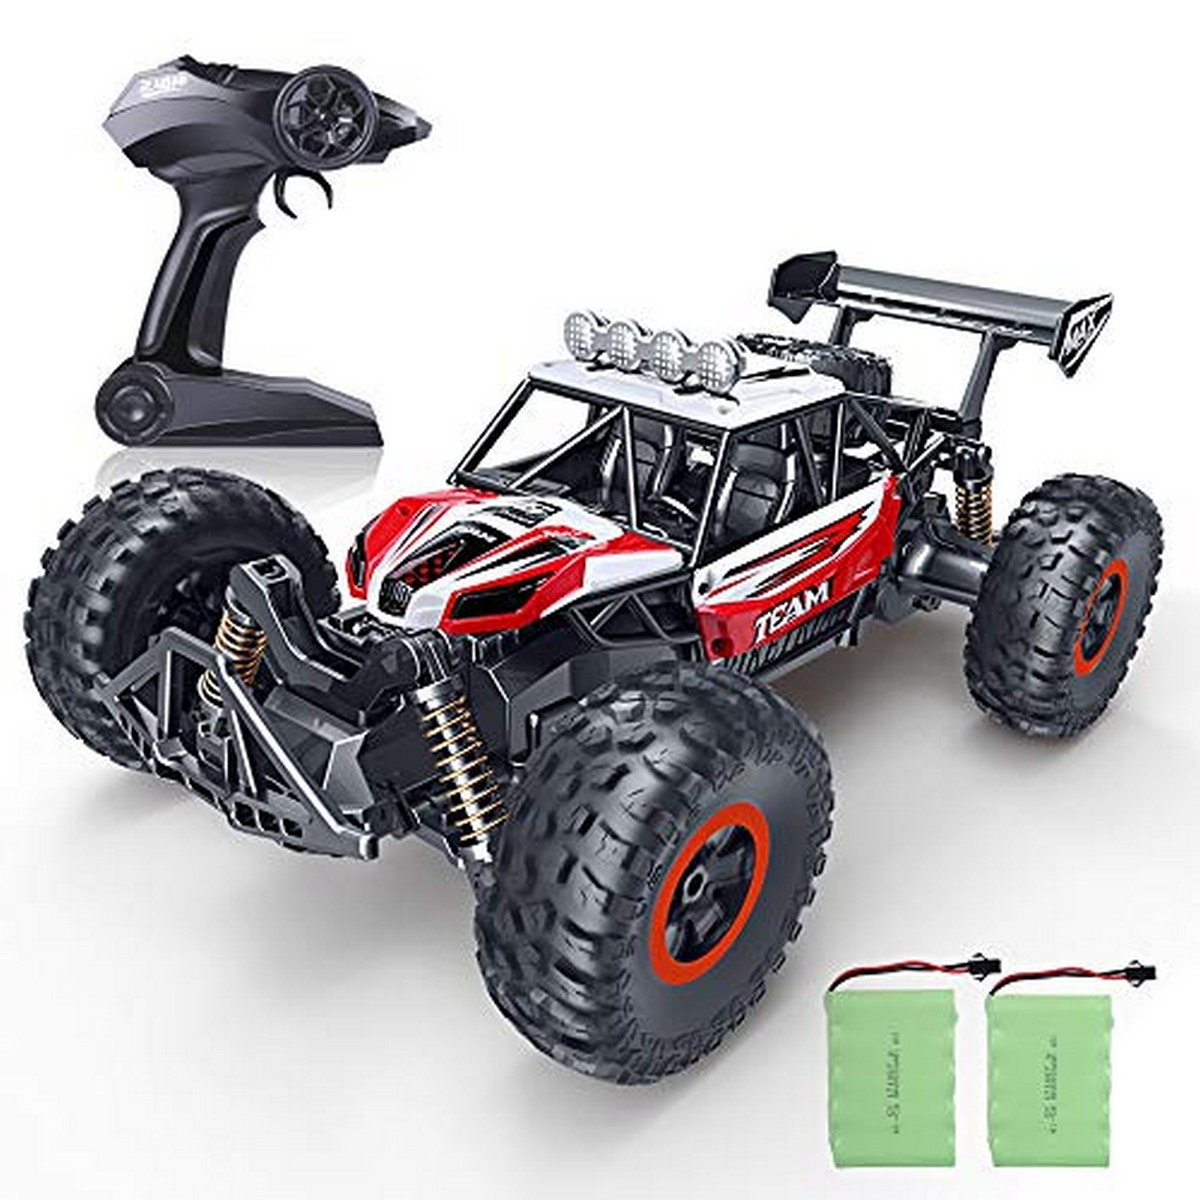 High Speed Remote Control Car 2.4Ghz Off Road RC Monster Truck Toy For Kids